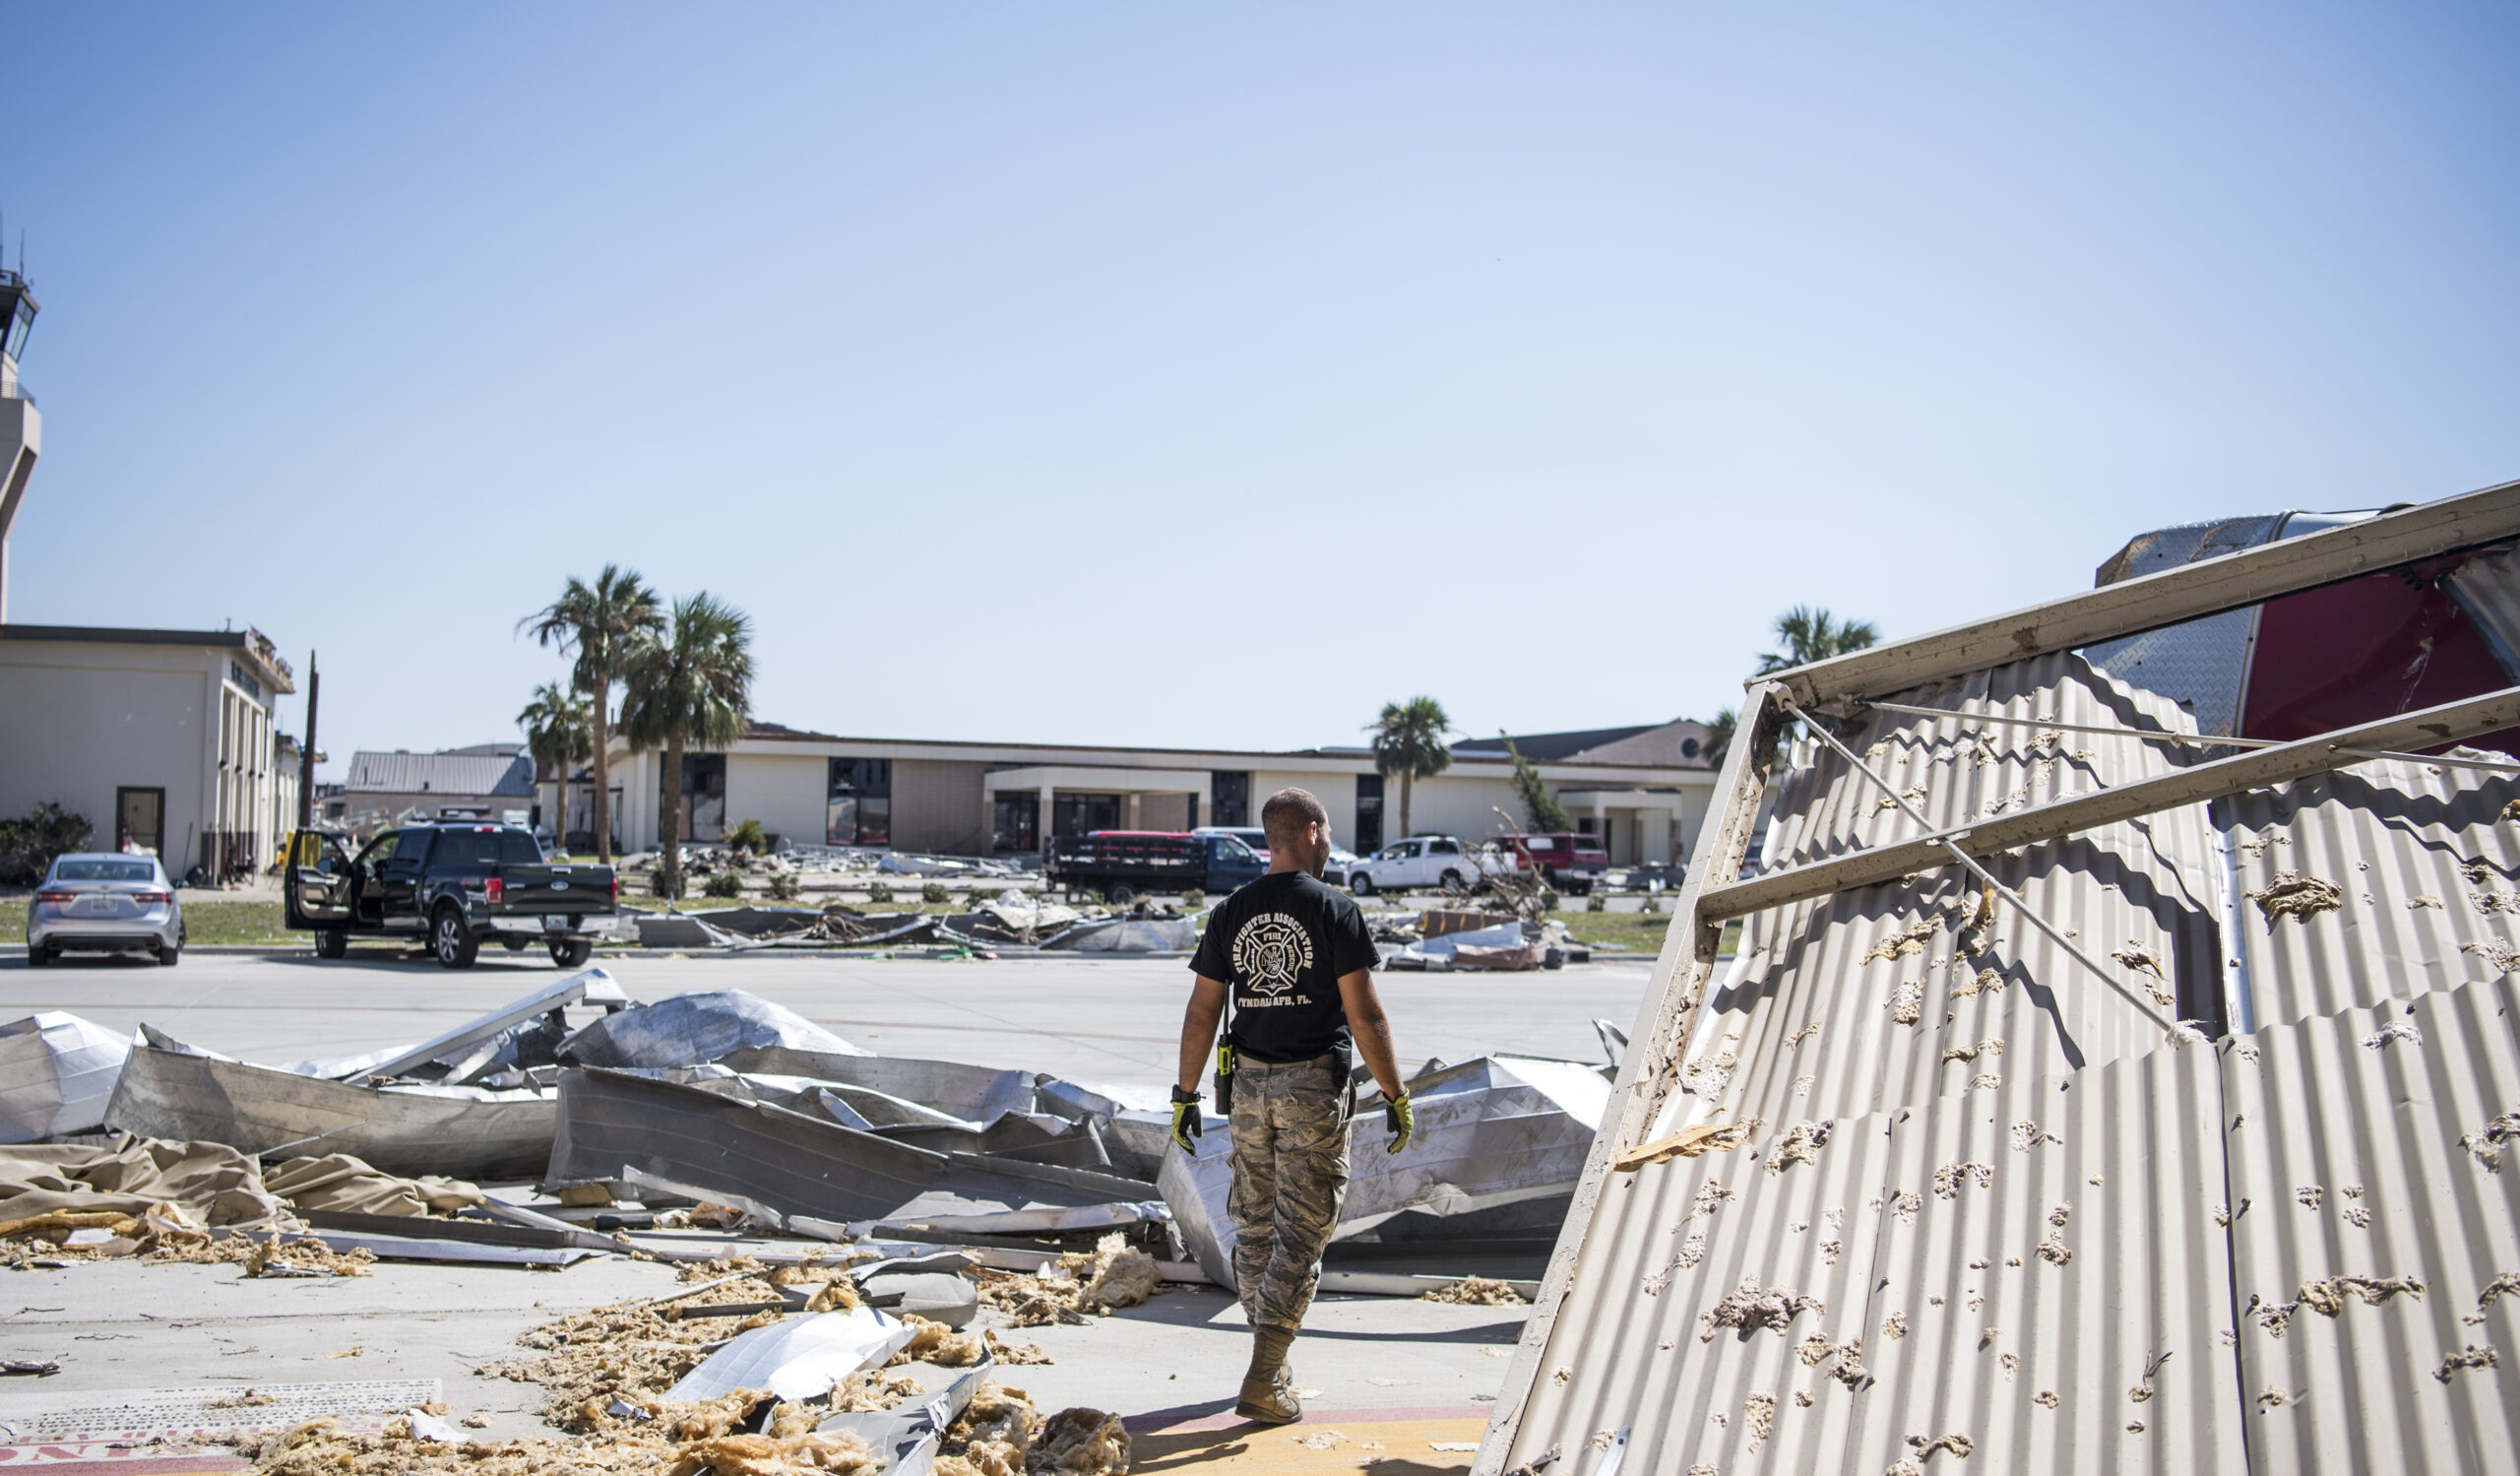 A Member of the 325th Civil Engineer Squadron begins the clean up process around their squadron on Tyndall Air Force Base, Florida, Oct. 18, 2018, following Hurricane Michael. Credit: U.S. Air Force photo by Senior Airman Keifer Bowes